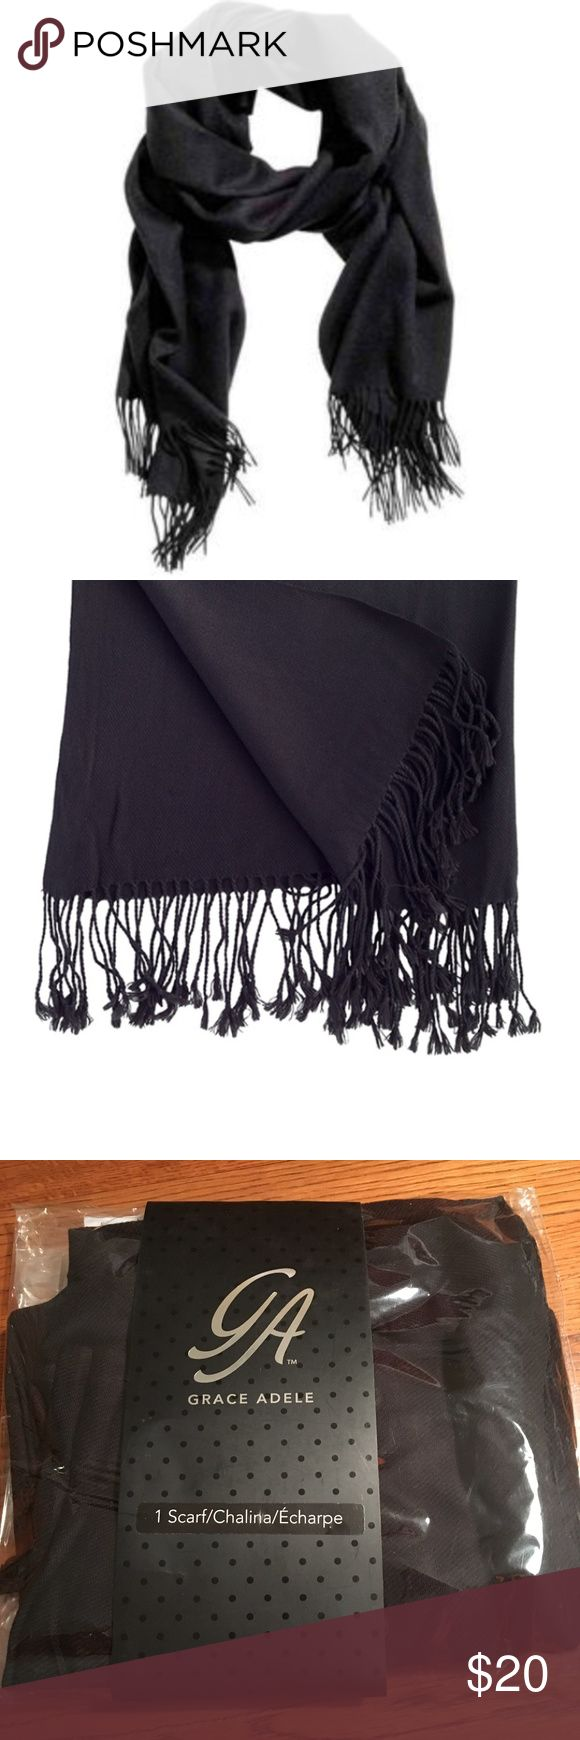 "Grace Adele Classic Fringed Black Scarf - NWT Wrap yourself up in chic, cozy style with this classic black fringed scarf! The final layer for keeping warm & gorgeous.  Made from acrylic/viscose.  69"" long.  27 1/2"" wide.  Fringe is 3 1/2"".  Smoke free home.  All measurements are approximate.    *Bundle and save!* Grace Adele Accessories Scarves & Wraps"